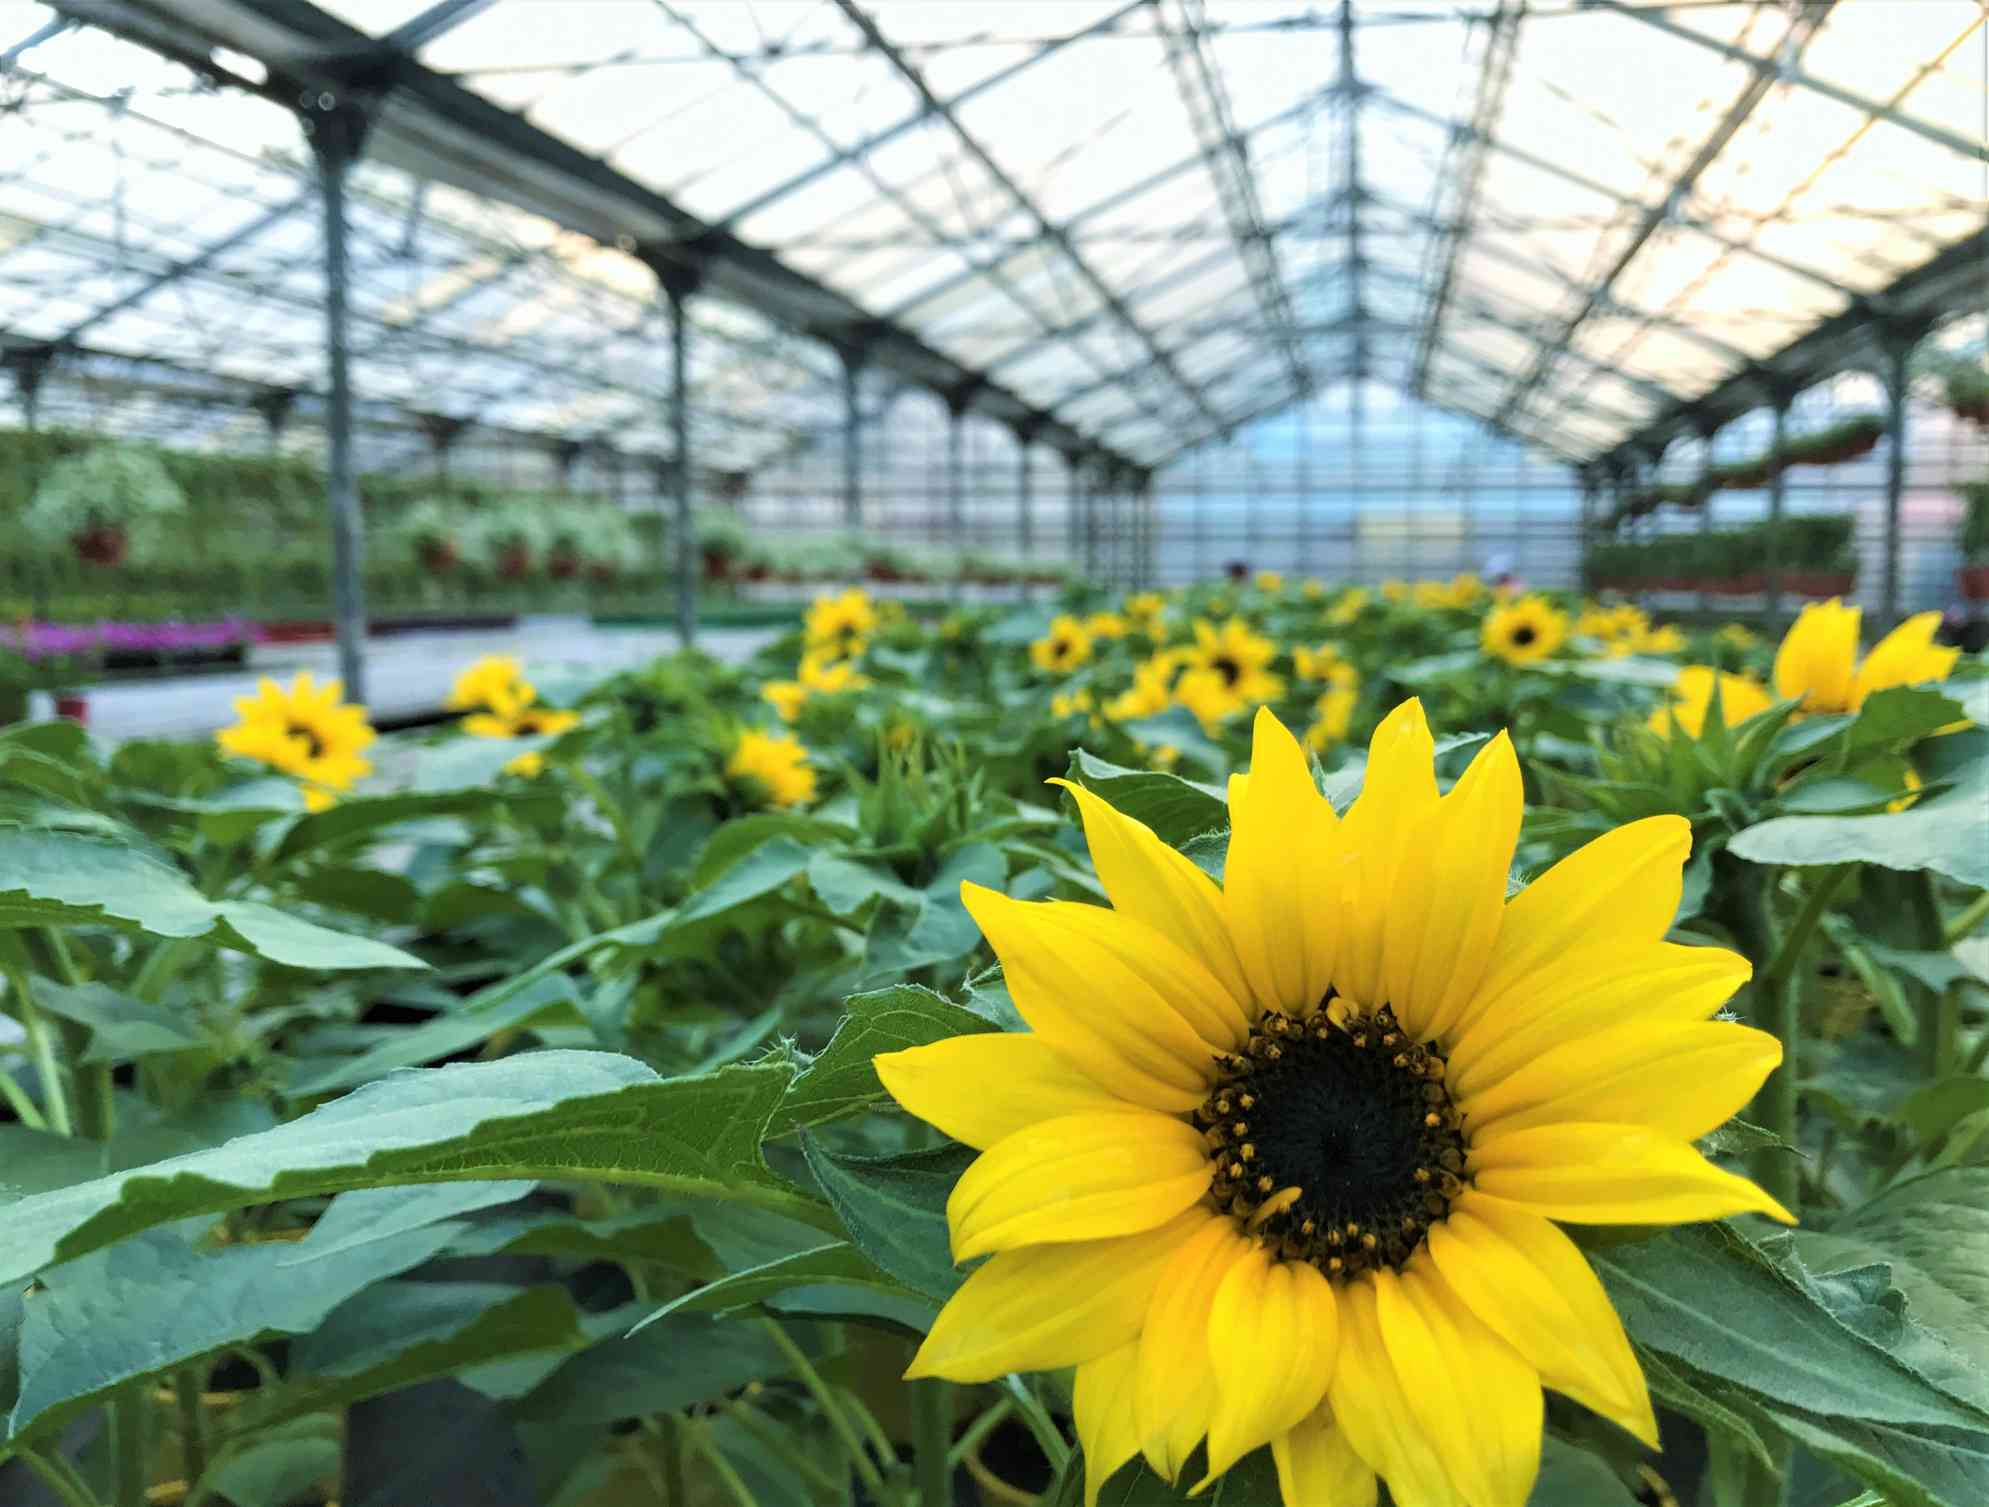 Sunflowers grown in a greenhouse